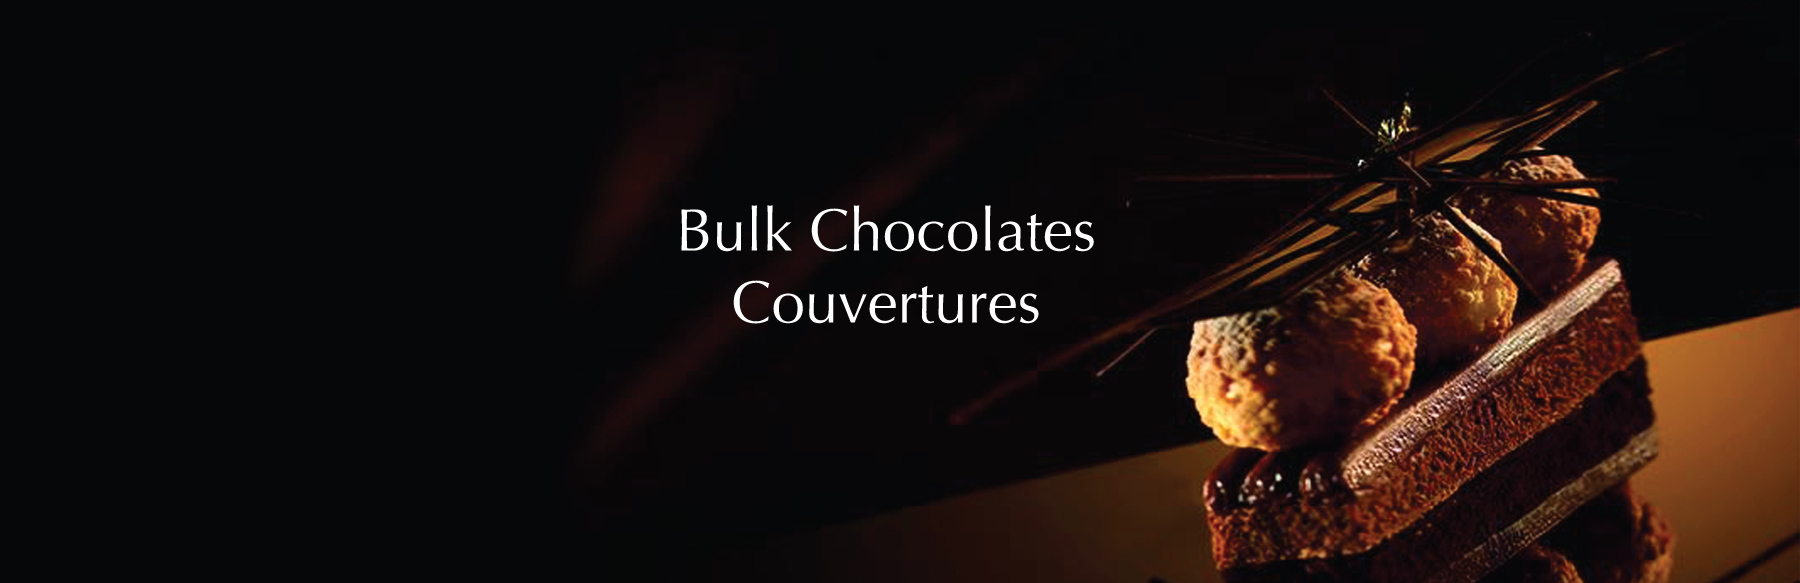 Belcolade Bulk Chocolate - Couverture